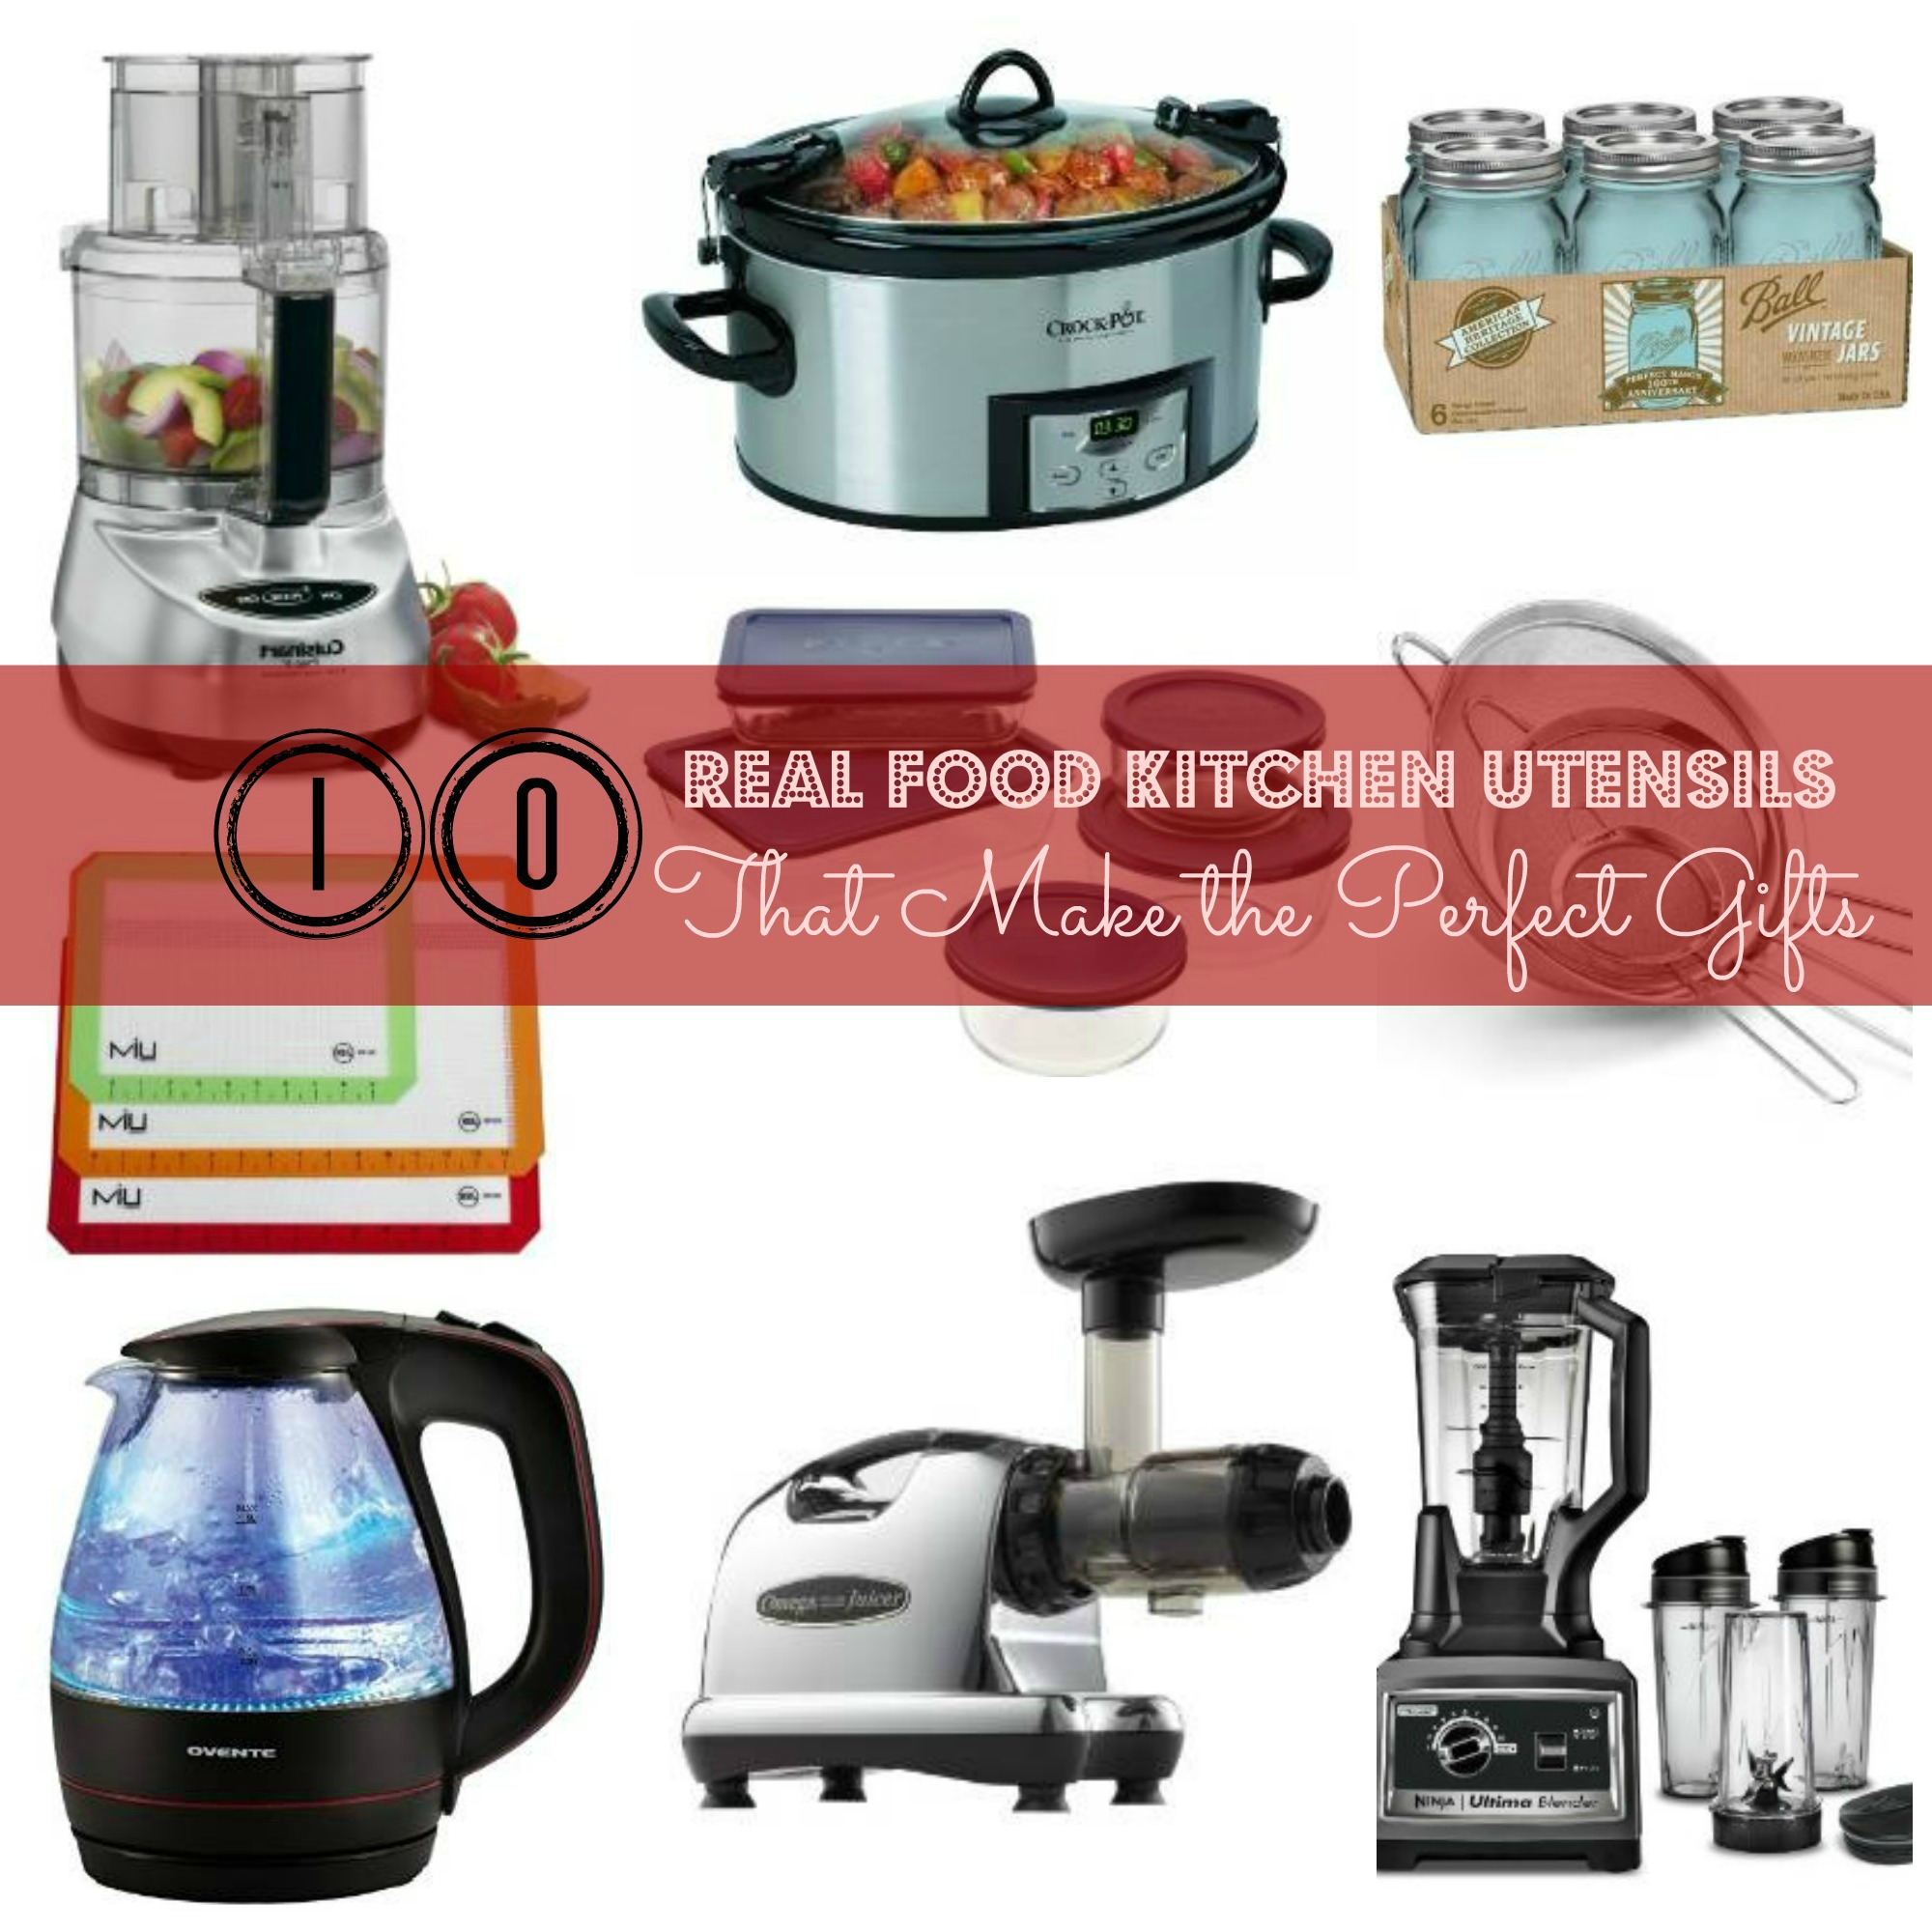 Gift Kitchen 10 Real Food Kitchen Utensils That Make Perfect Gifts The